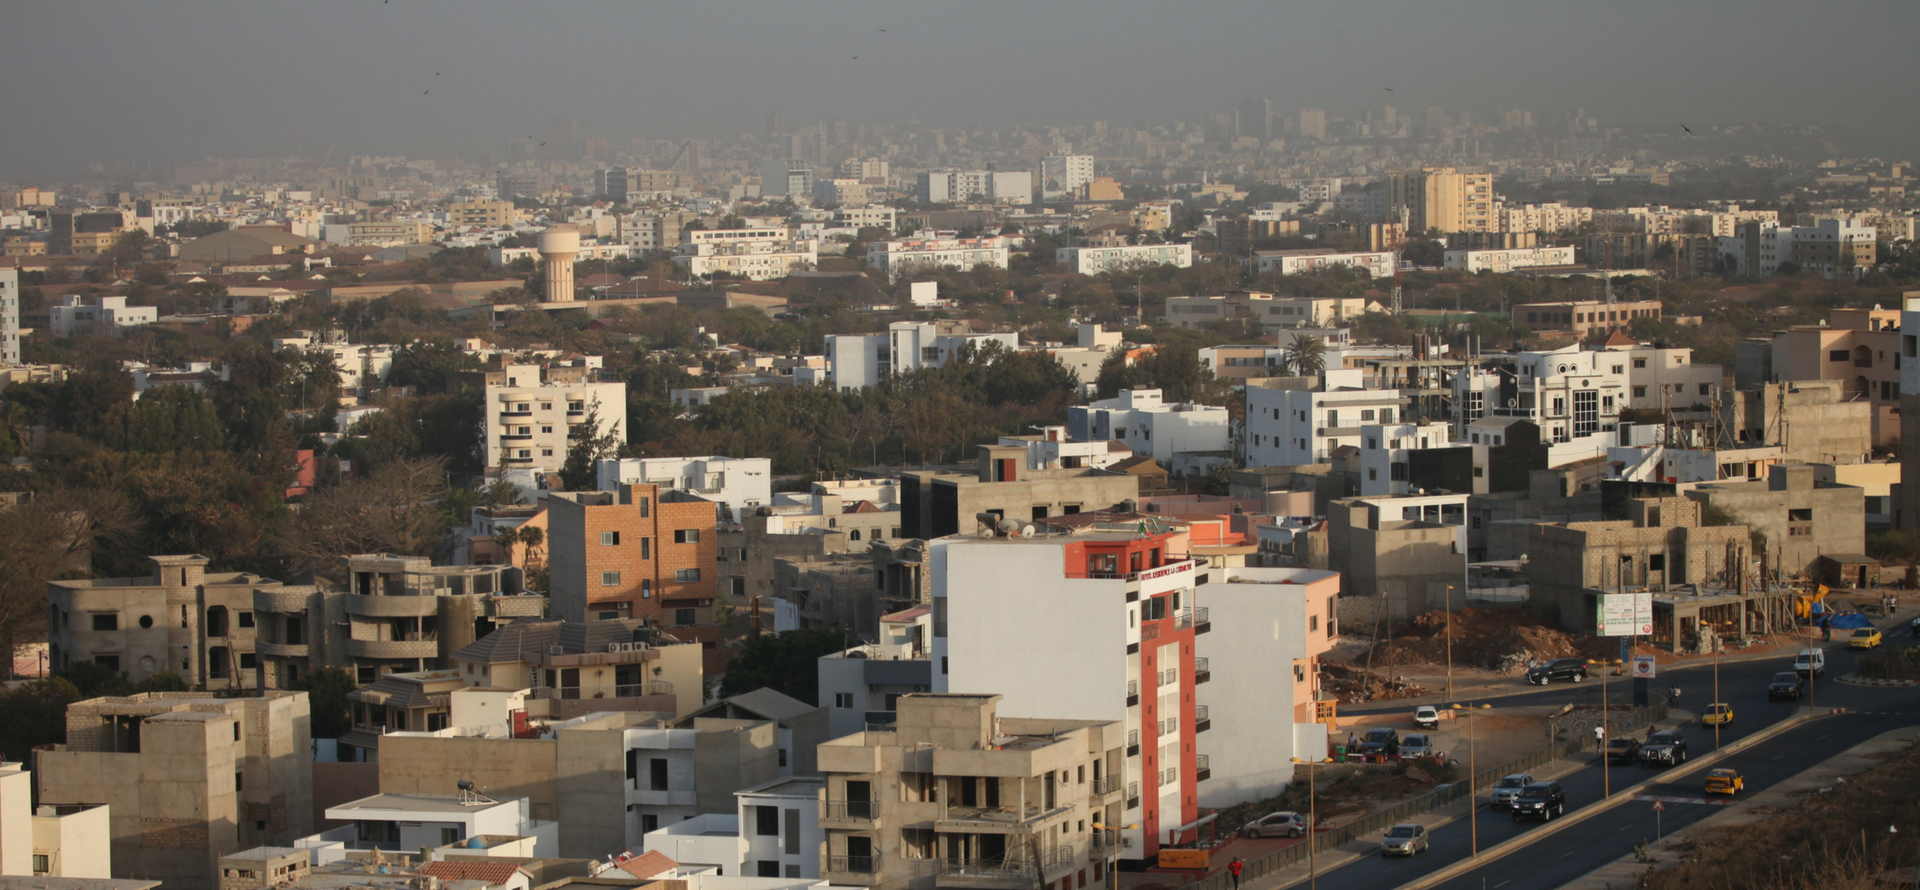 Buildings in Senegal with smog overhead.